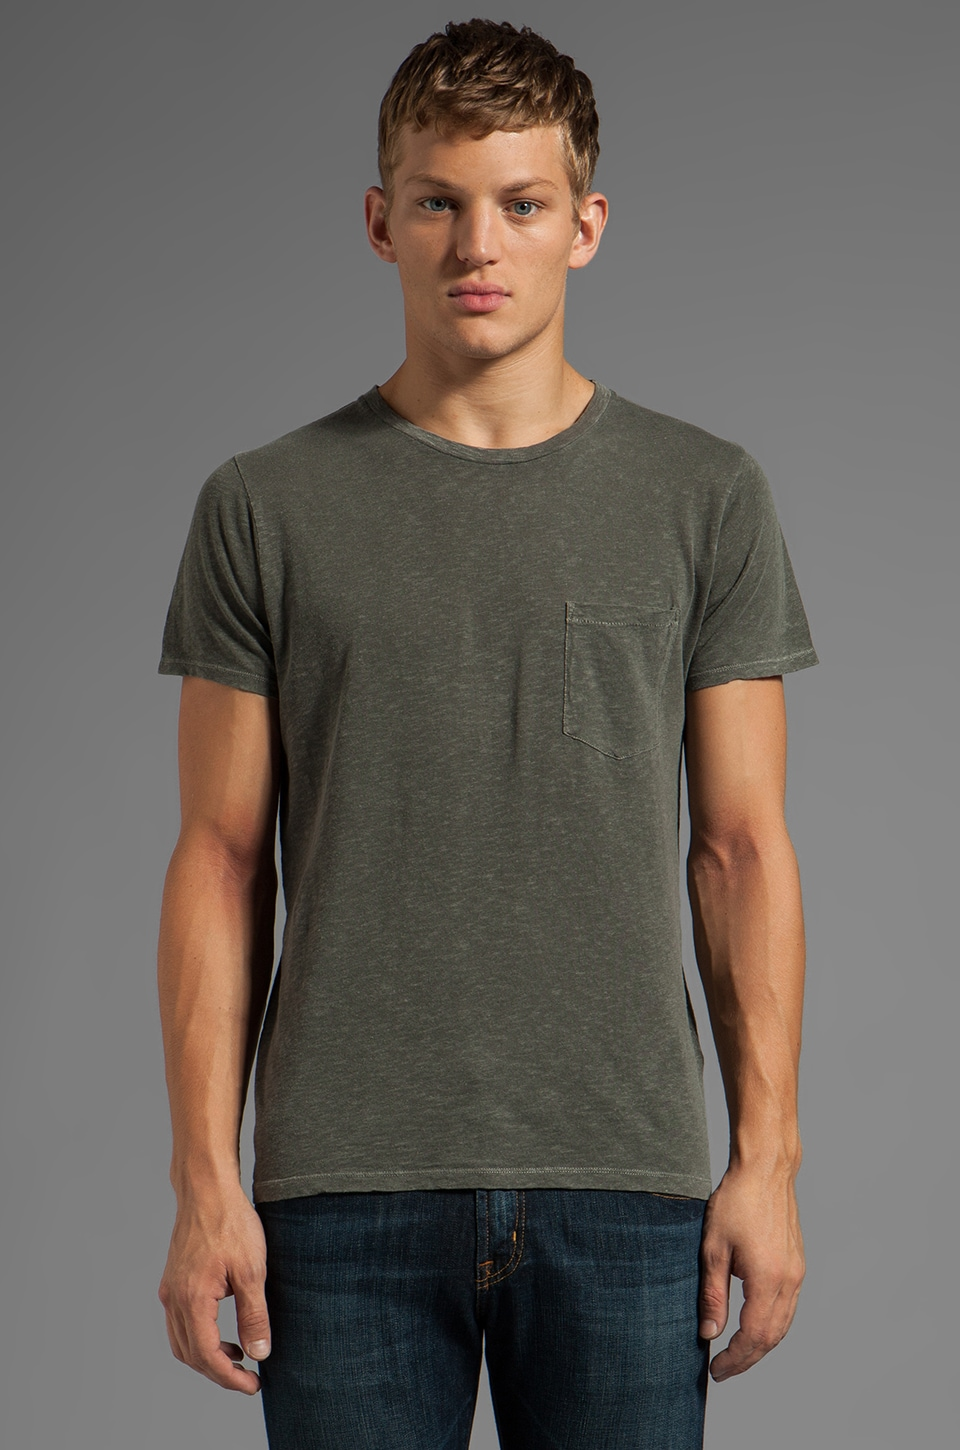 AG Adriano Goldschmied Back Seam Pocket Tee in Pigment Diesel